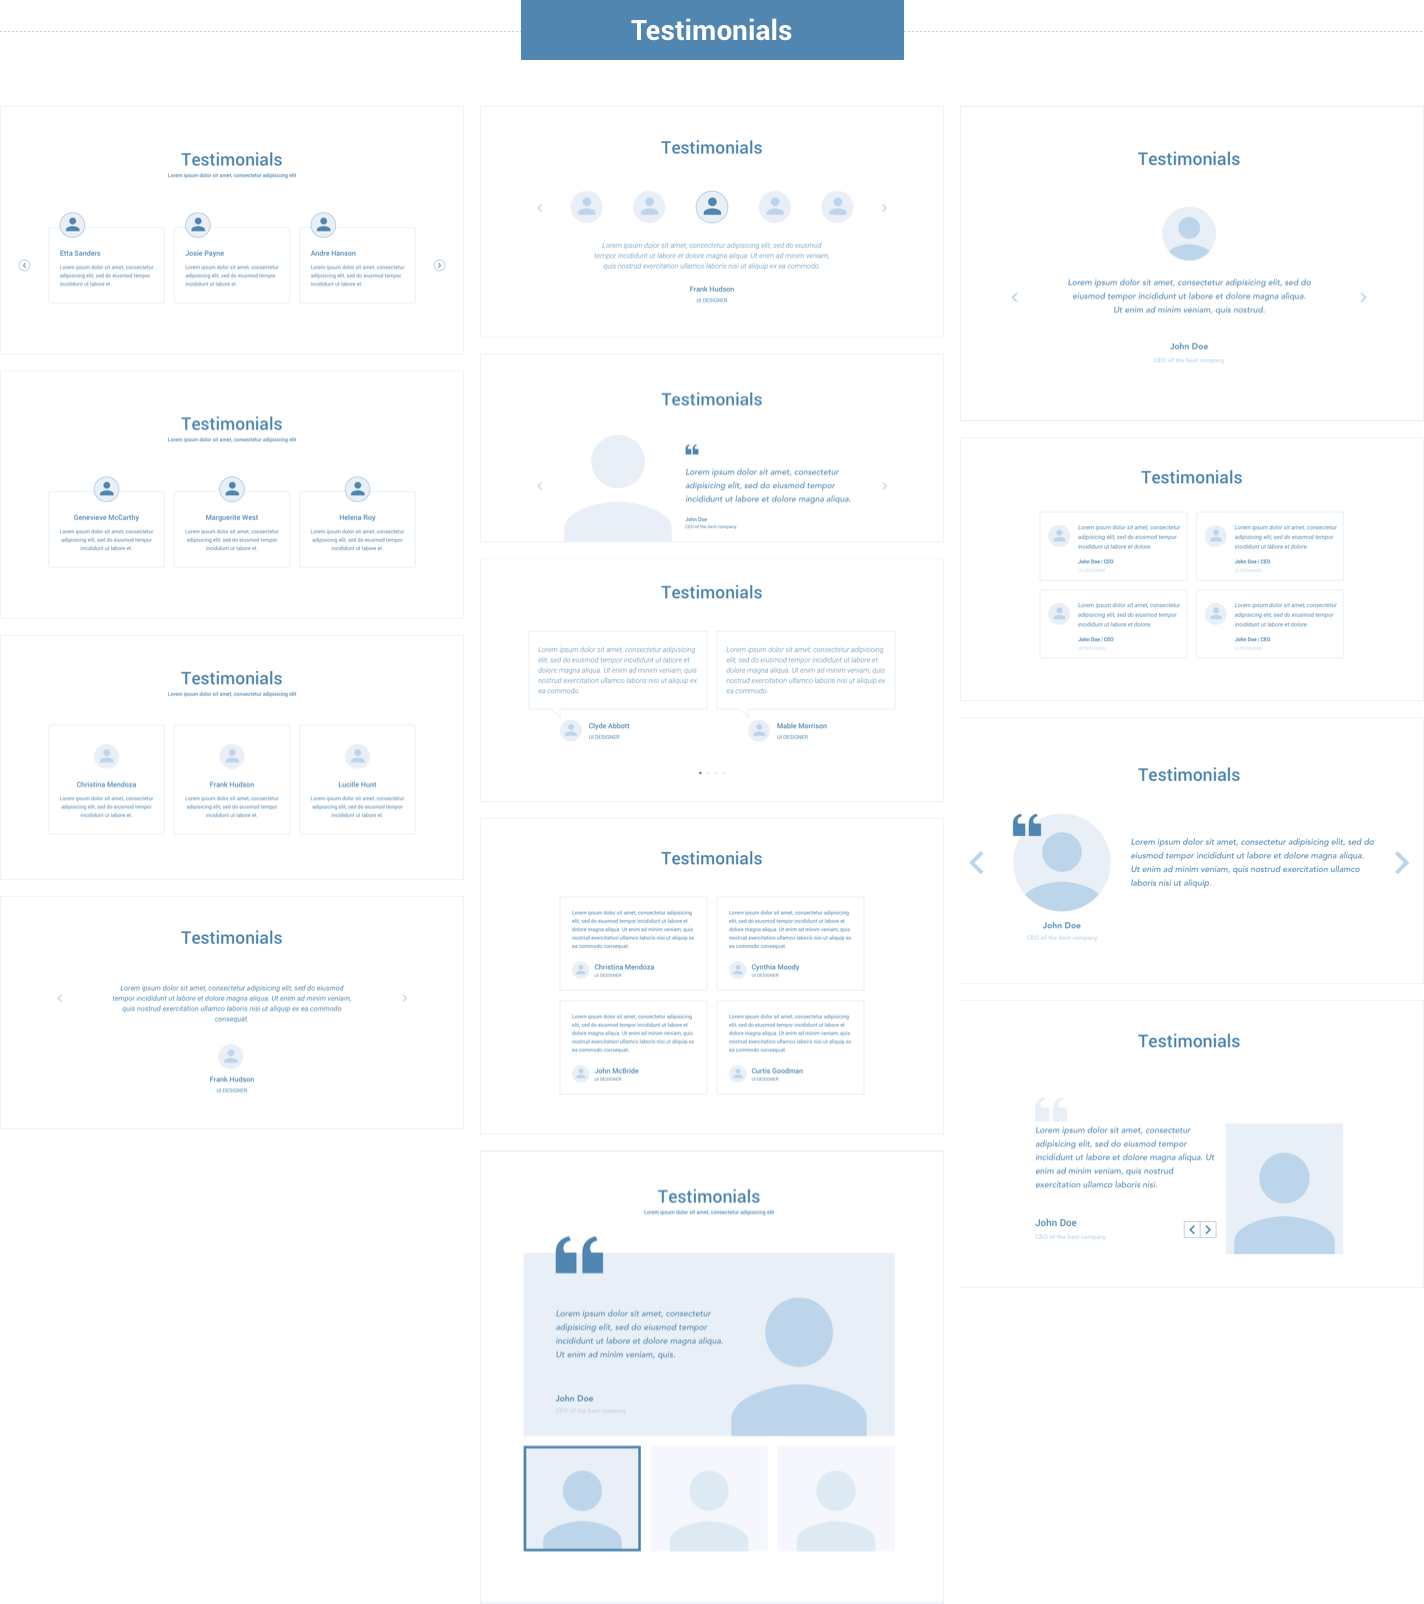 Wireframe for web - Testimonials